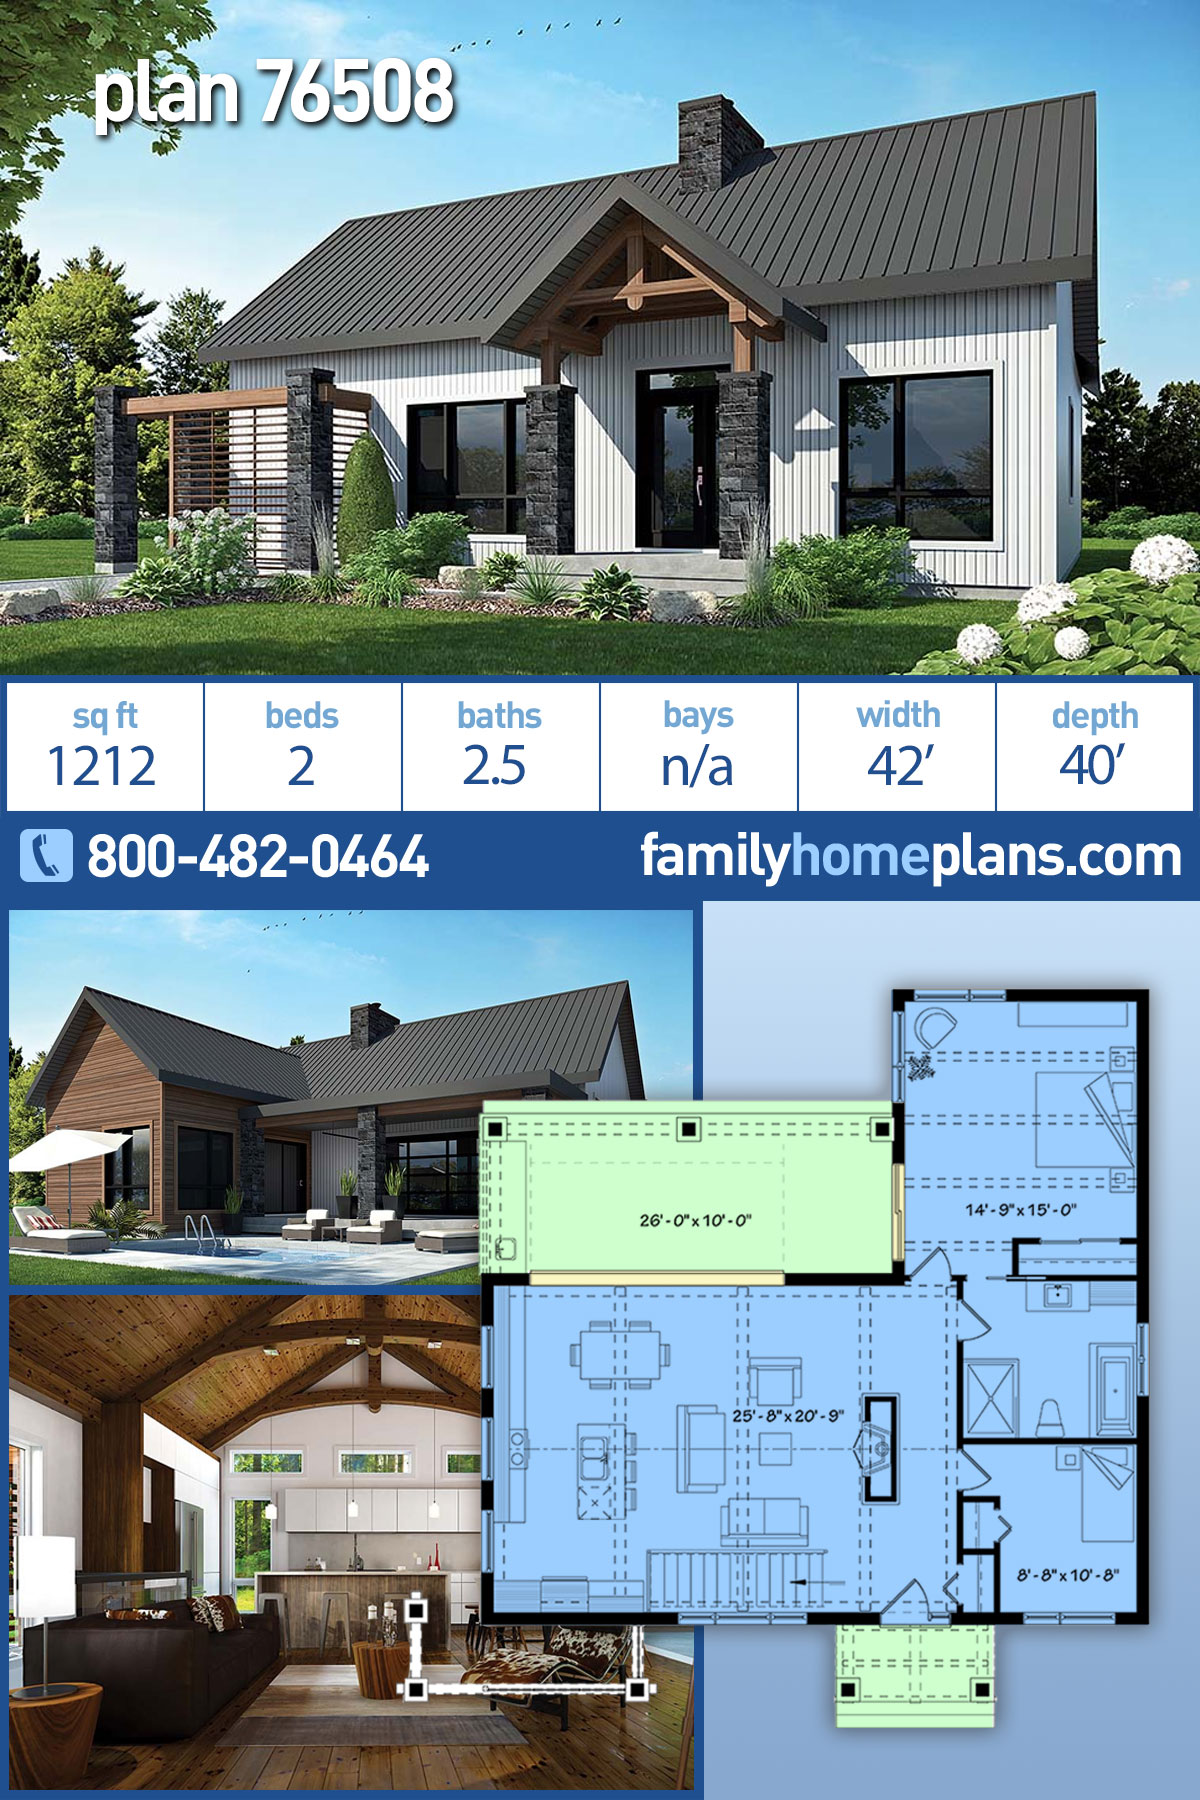 Cape Cod , Contemporary , Cottage , Country , Craftsman , Modern House Plan 76508 with 2 Beds, 1 Baths